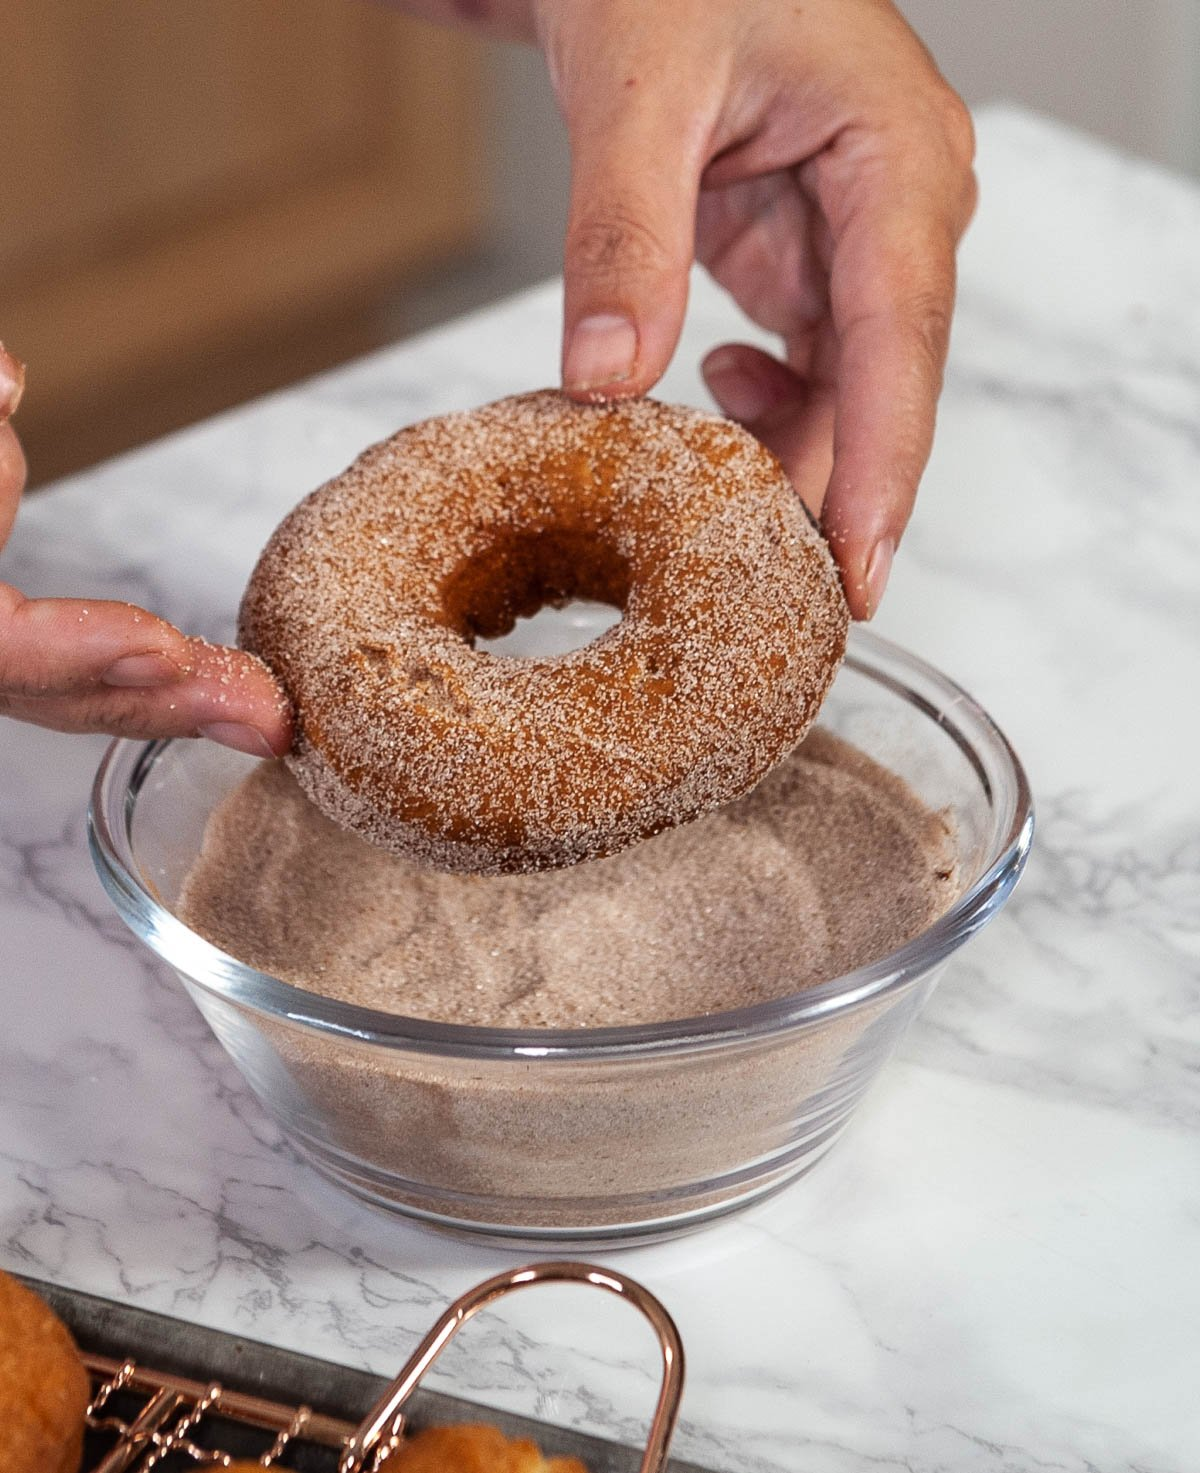 donut being held above a glass bowl of cinnamon sugar